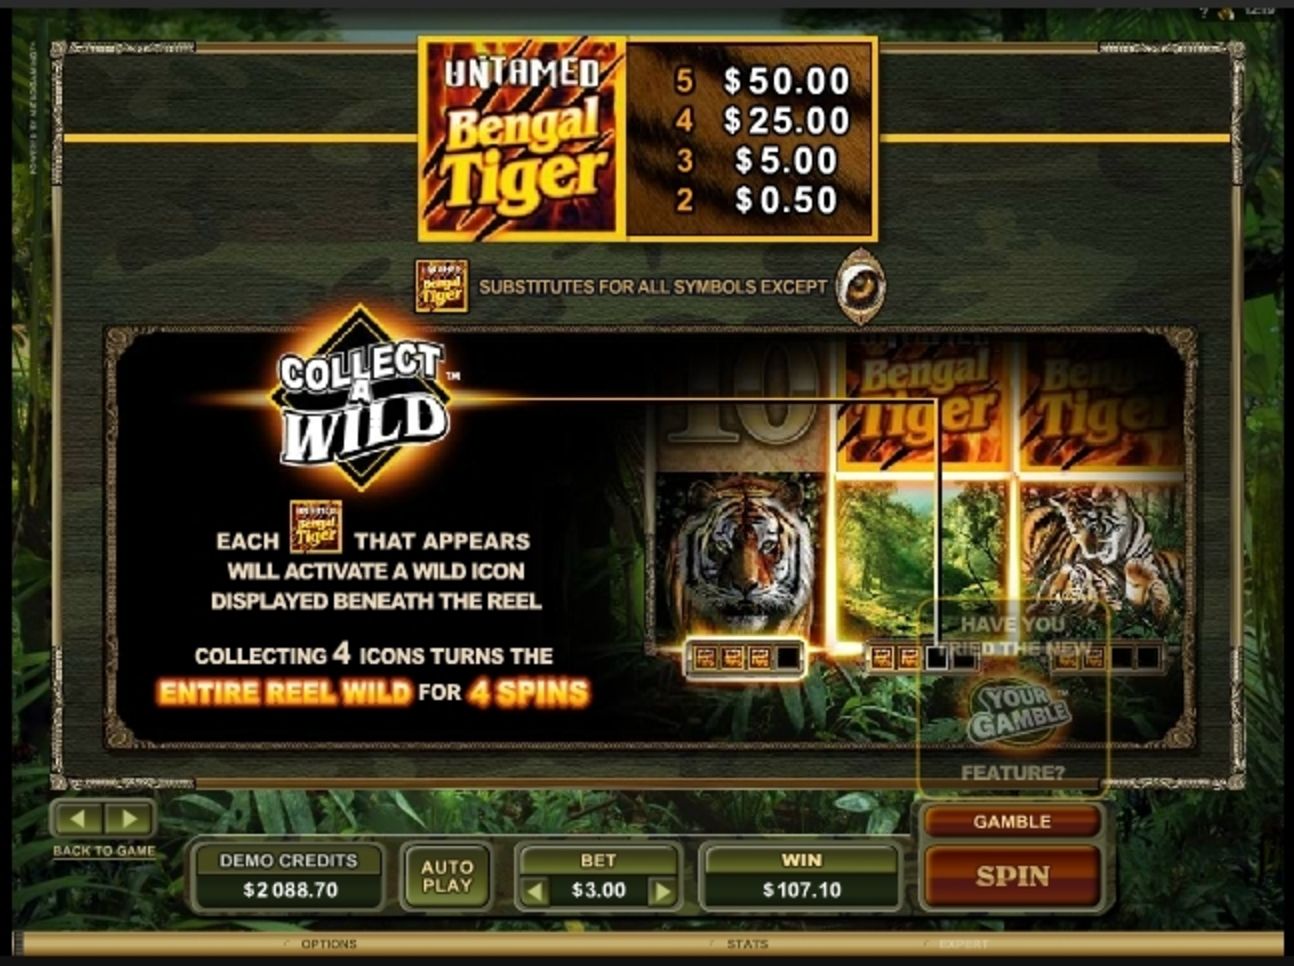 Info of Untamed Bengal Tiger Slot Game by Microgaming